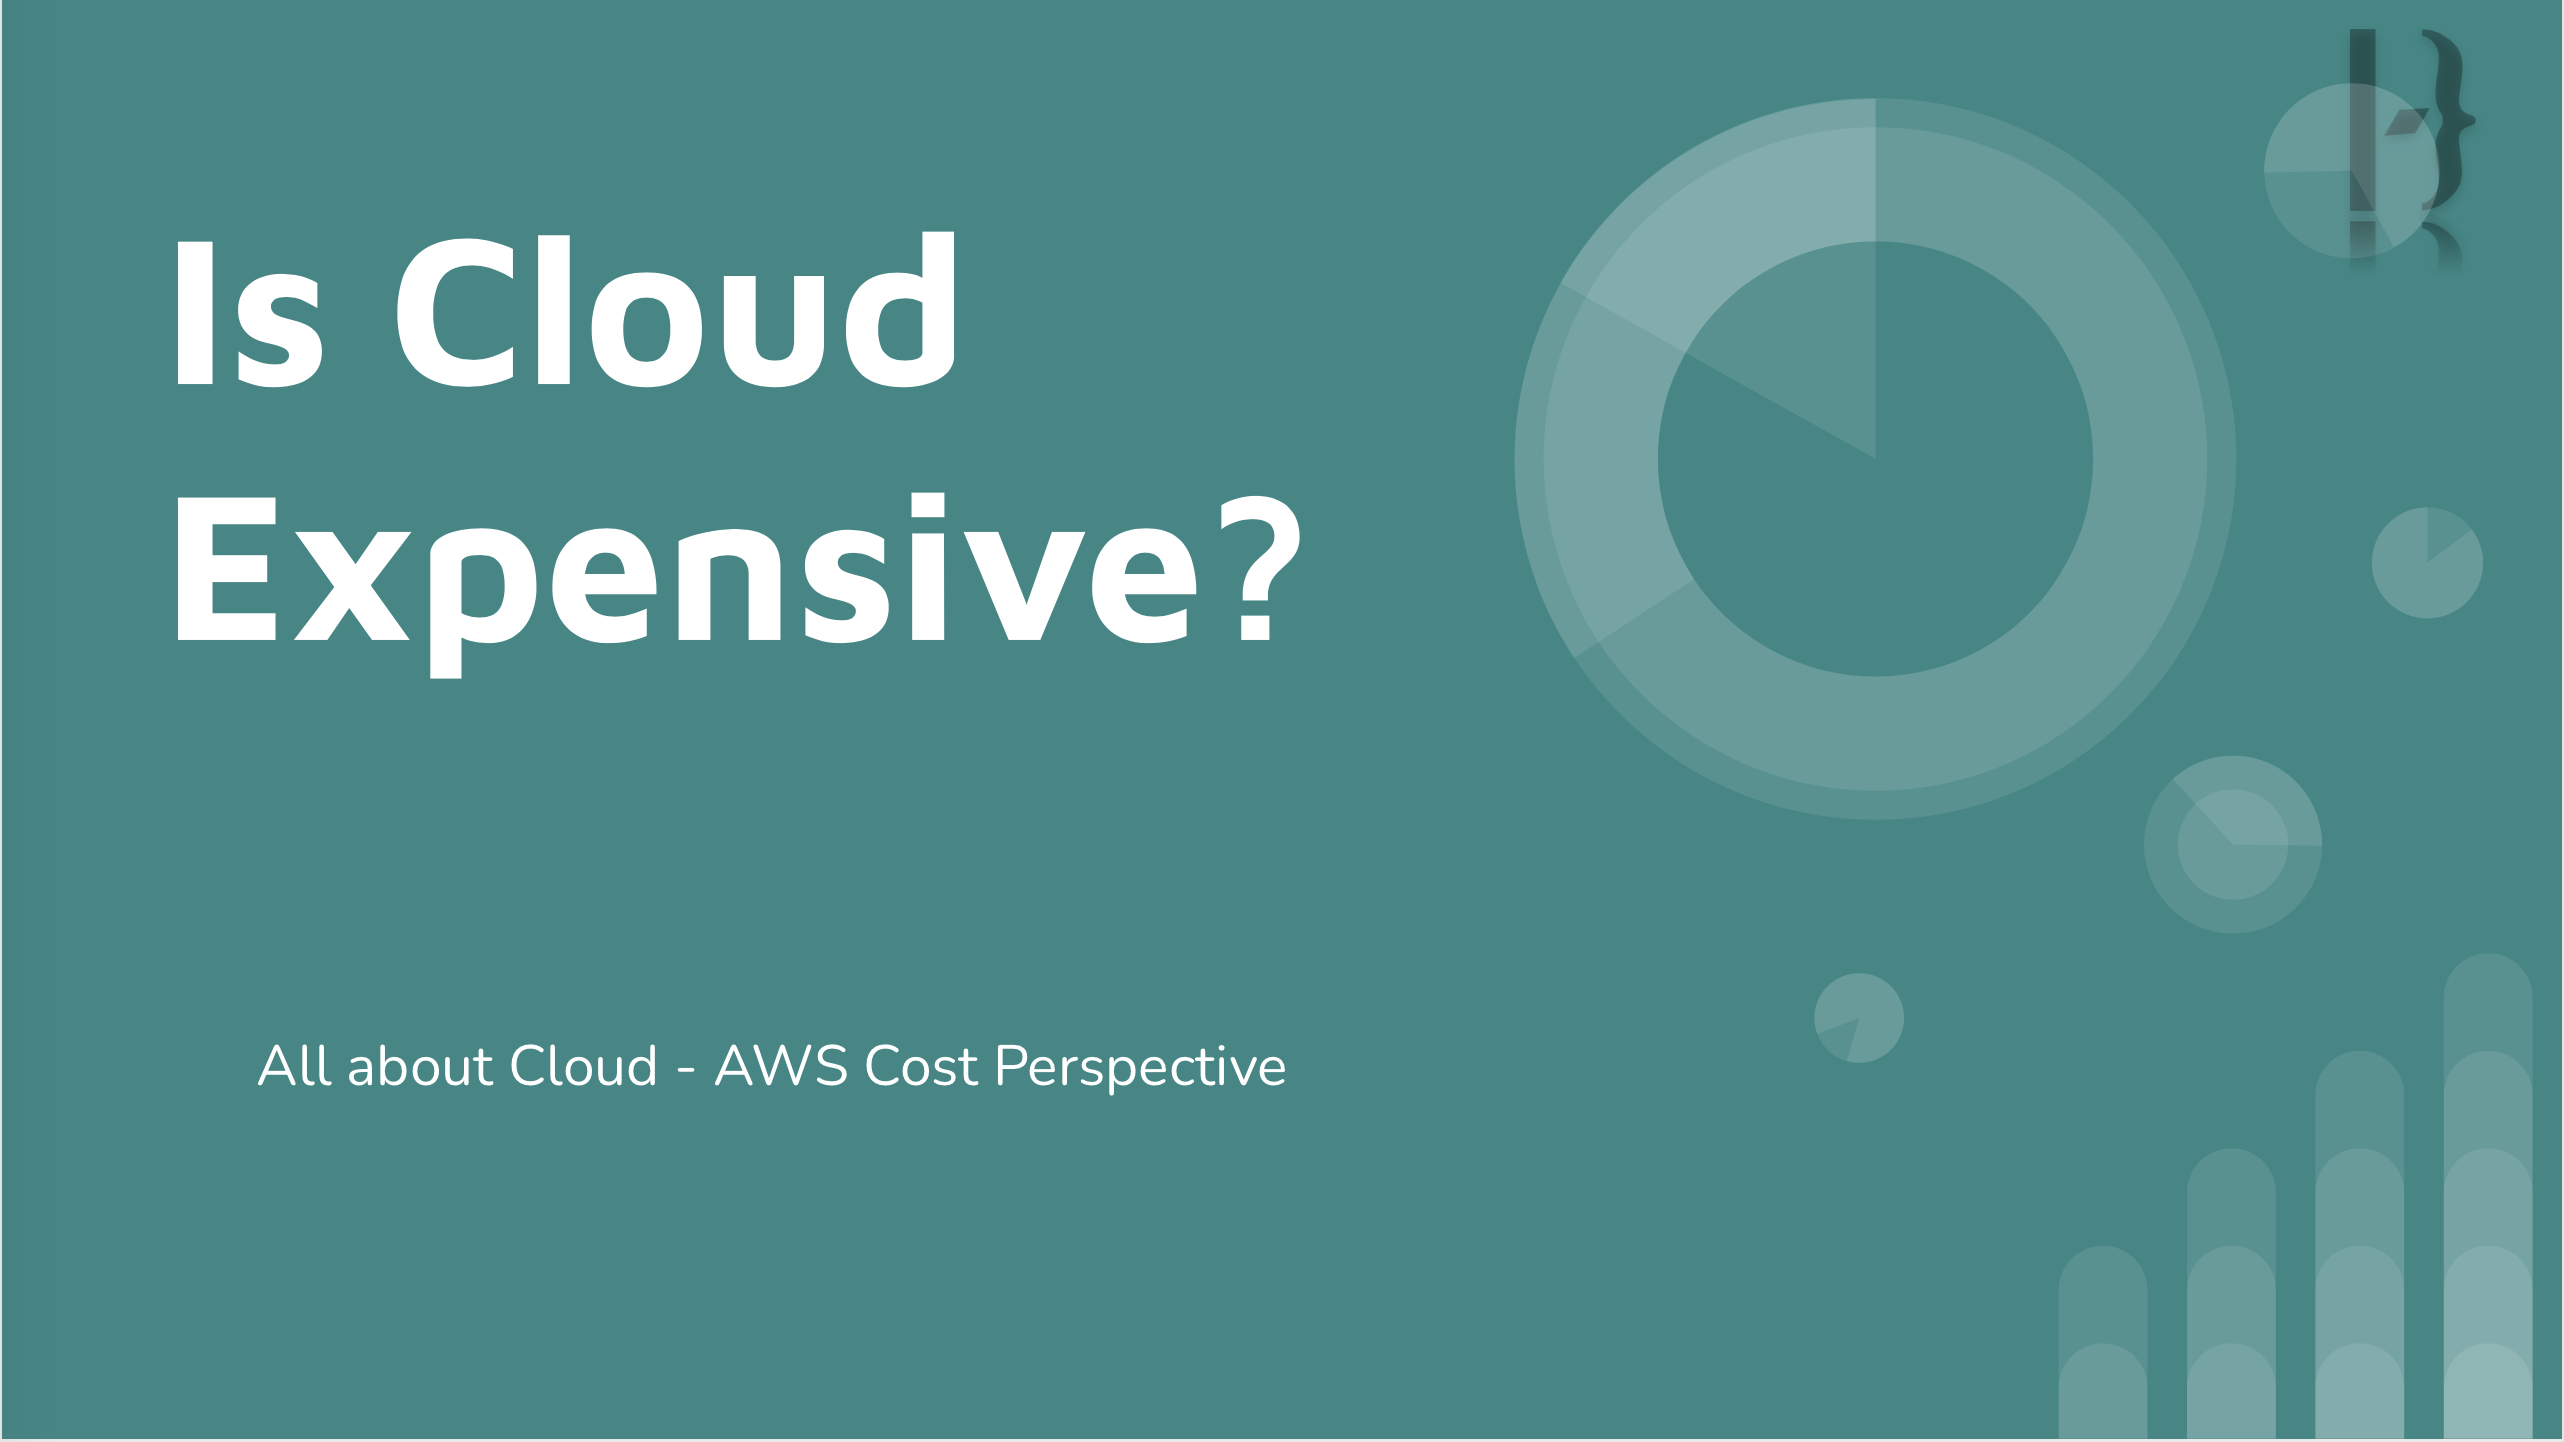 Is Cloud Expensive?